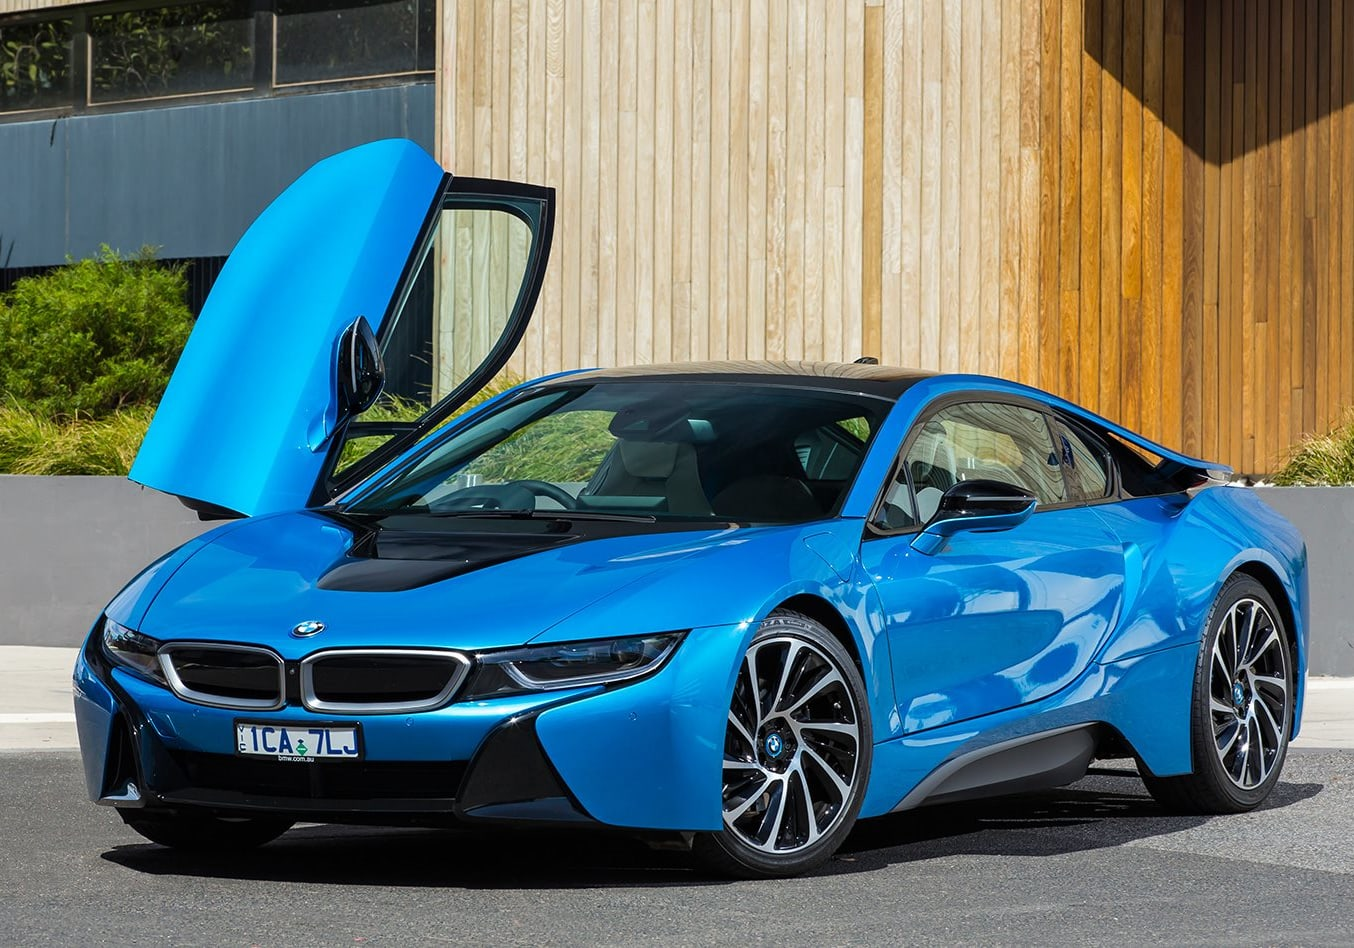 BMW invests in hybrid vehicles despite government stalling